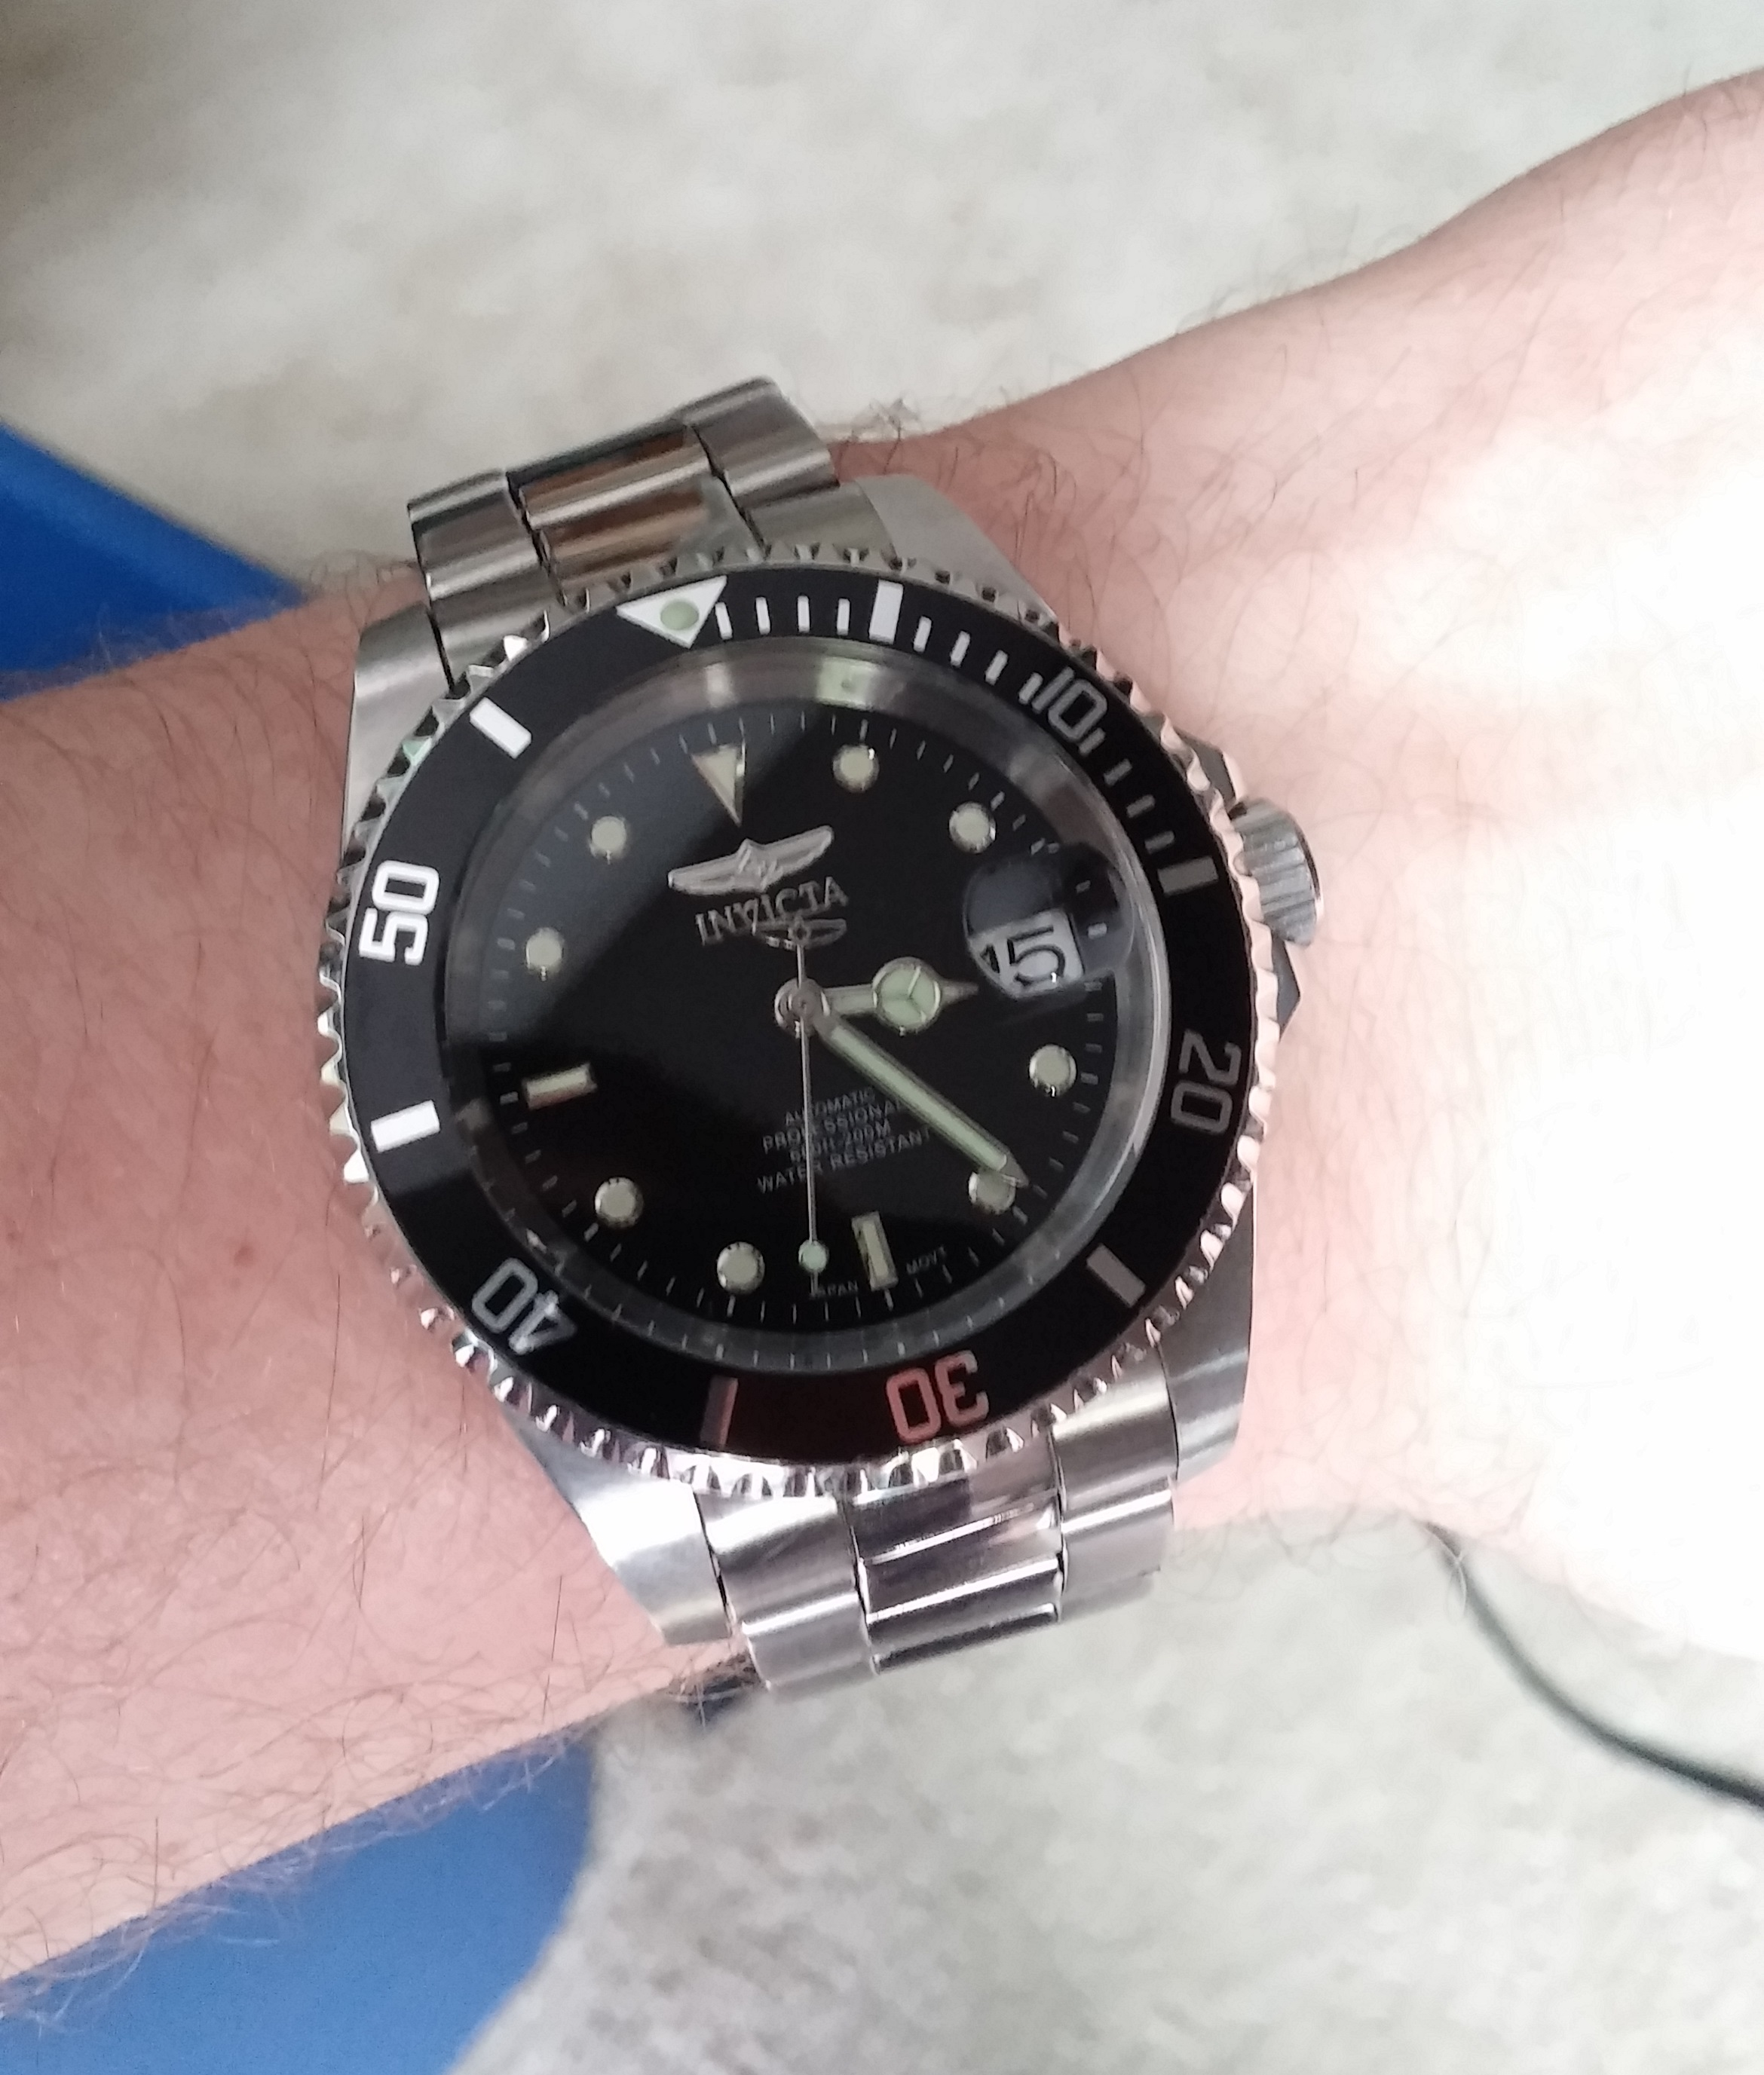 sea watches wearing wear davinci ybw submariner top most beautiful at to cartier features when rolex and date seen on from sailing ten land the be